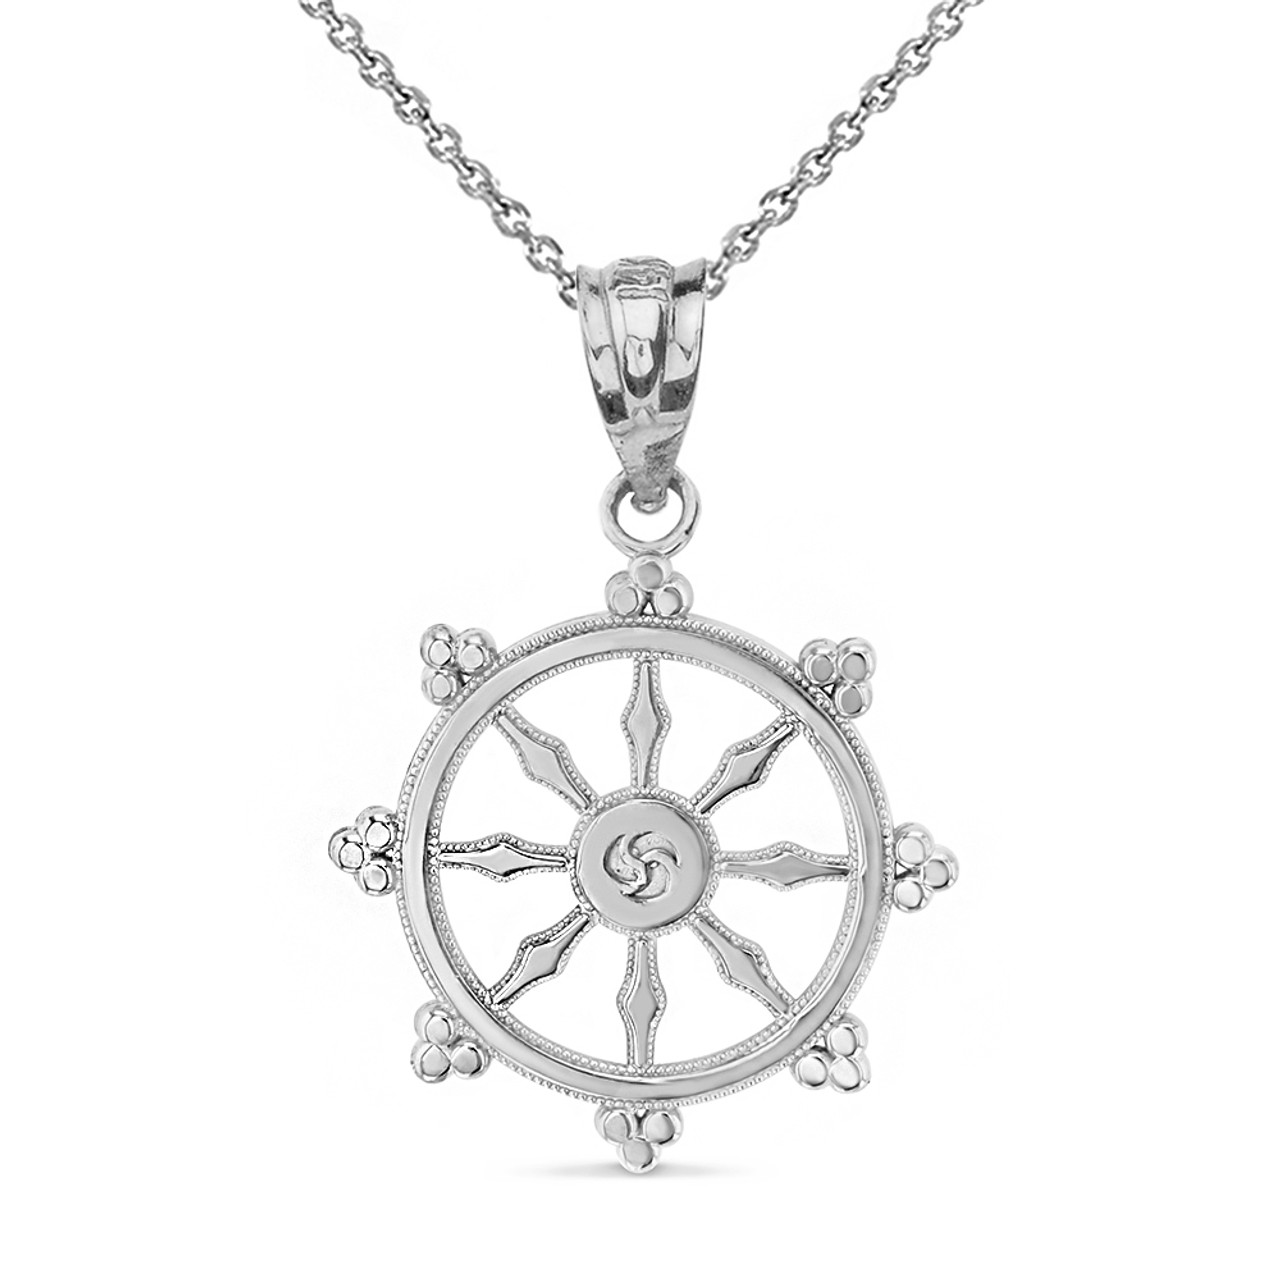 Solid white gold buddhism dharmachakra dharma wheel pendant necklace aloadofball Gallery